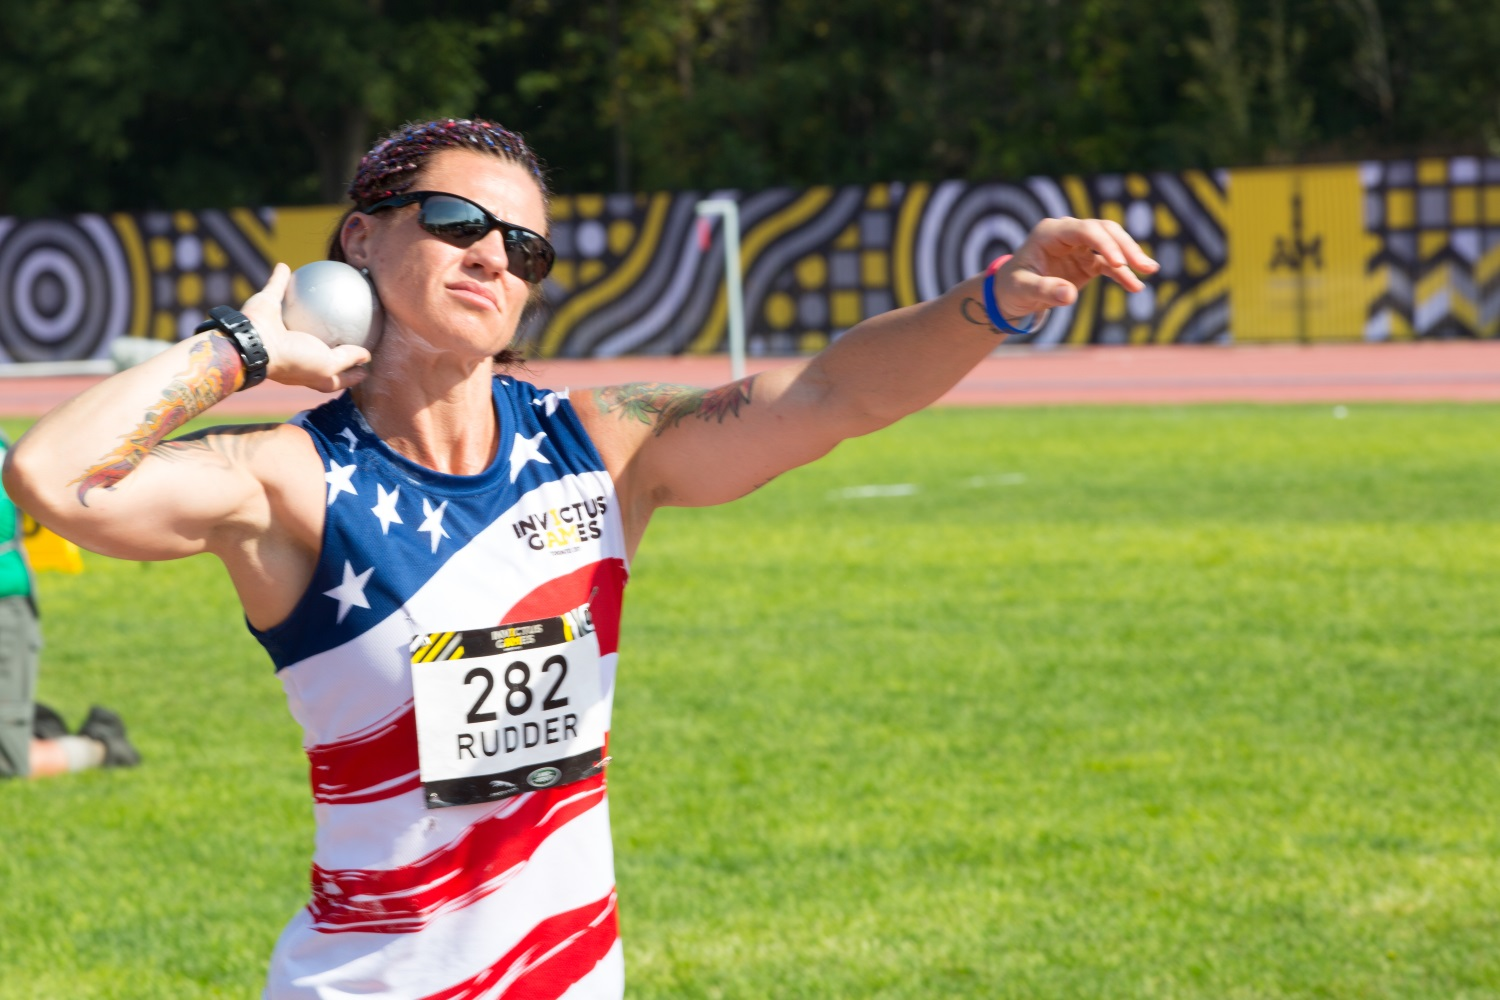 U.S. Marine Corps veteran Sarah Rudder prepares to throw a shot put at the York Lions Stadium in Toronto, Canada, on Sept. 25, 2017. (Spc. Samuel Brooks/Army)